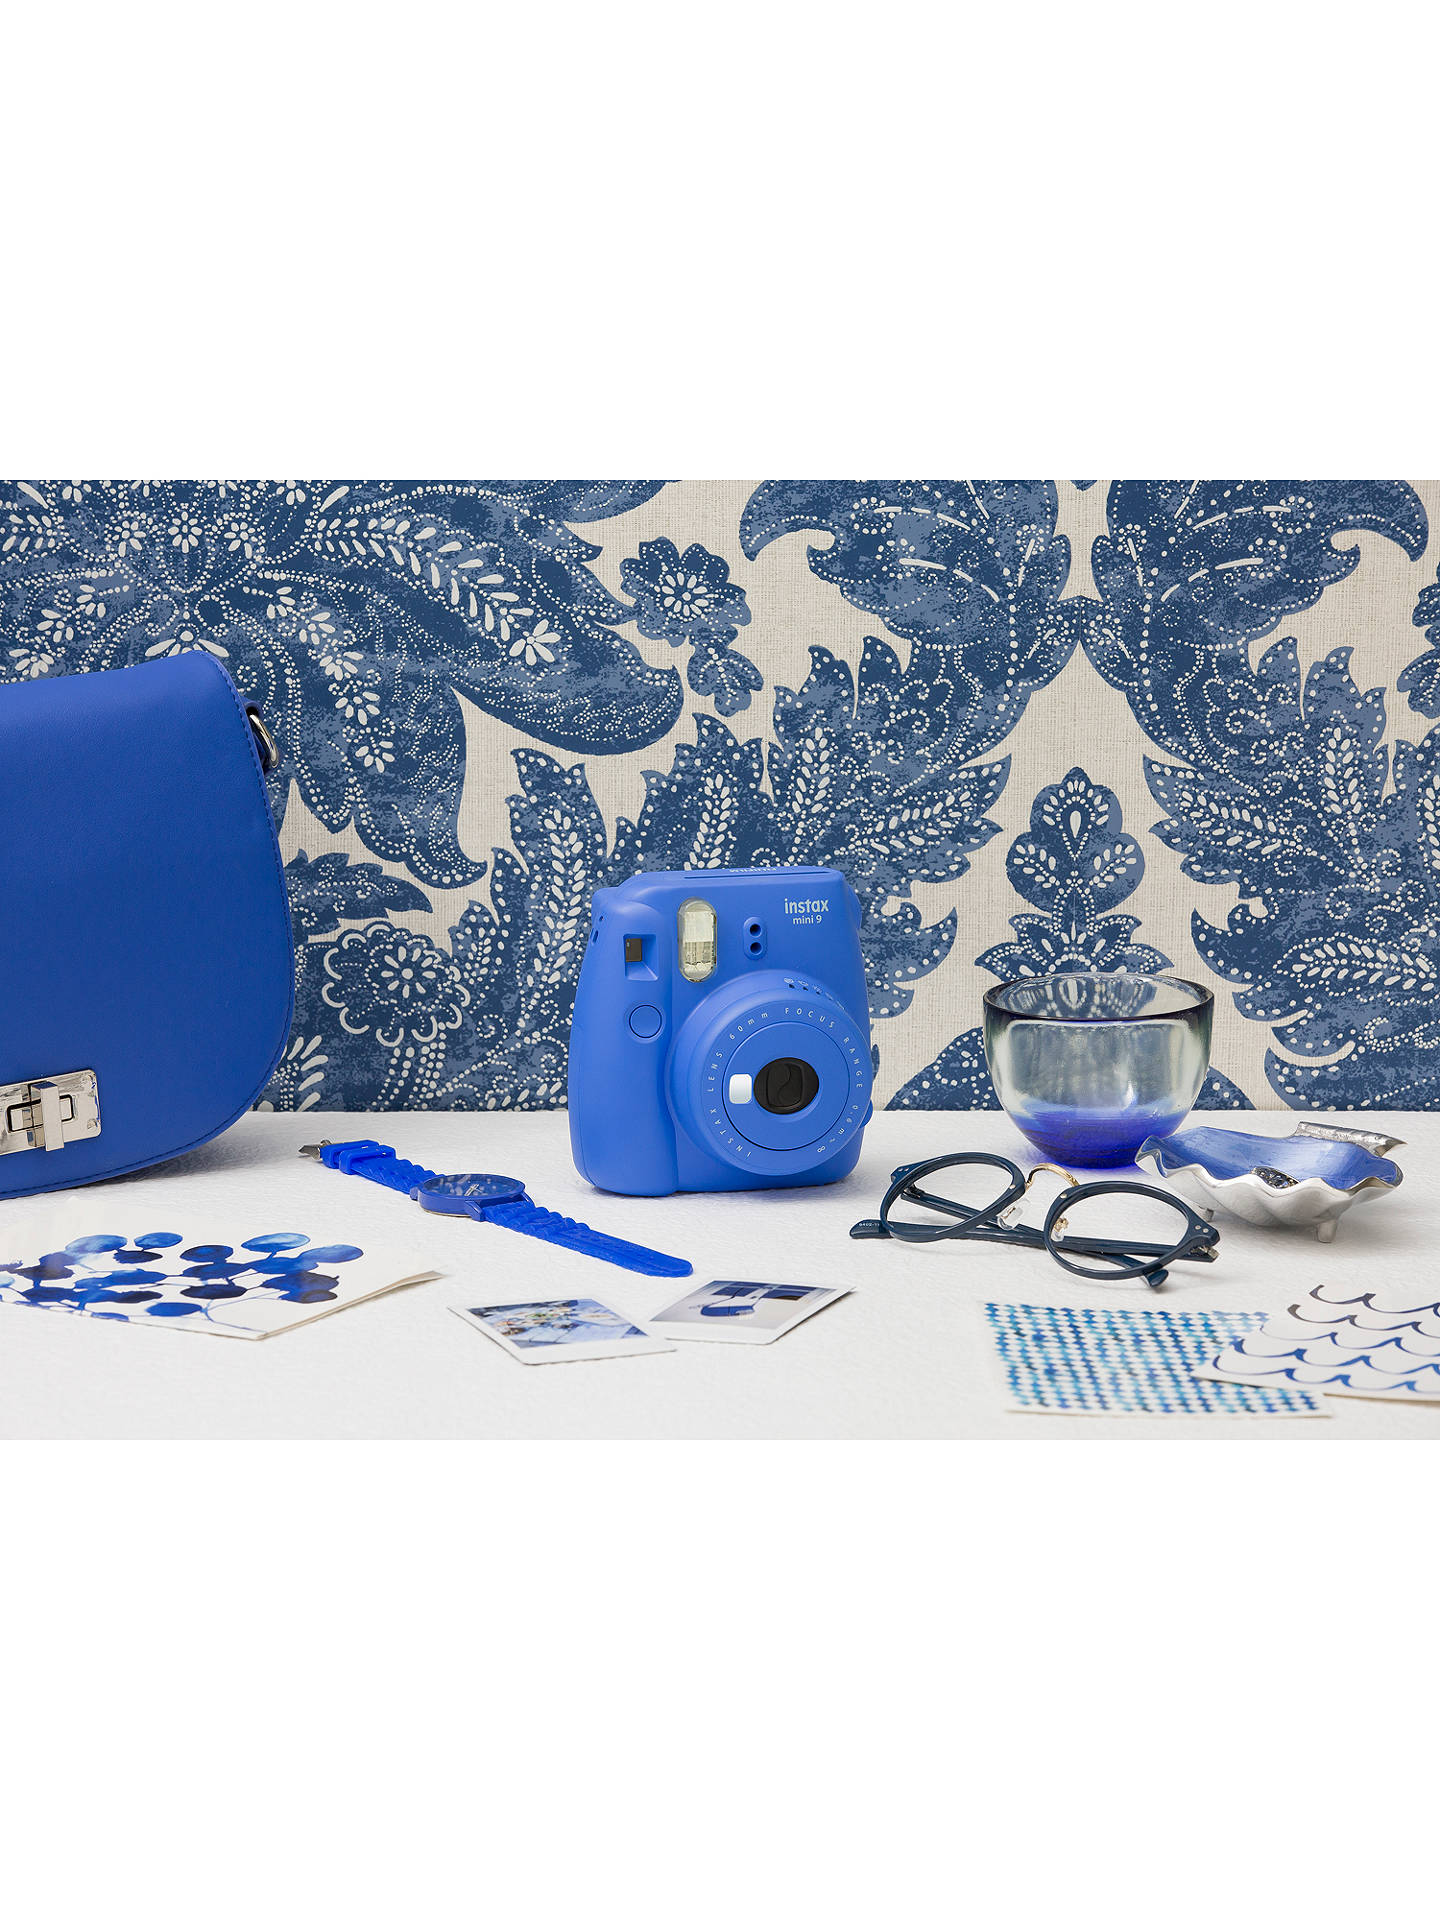 BuyFujifilm Instax Mini 9 Instant Camera with 10 Shots of Film, Built-In Flash & Hand Strap, Cobalt Blue Online at johnlewis.com